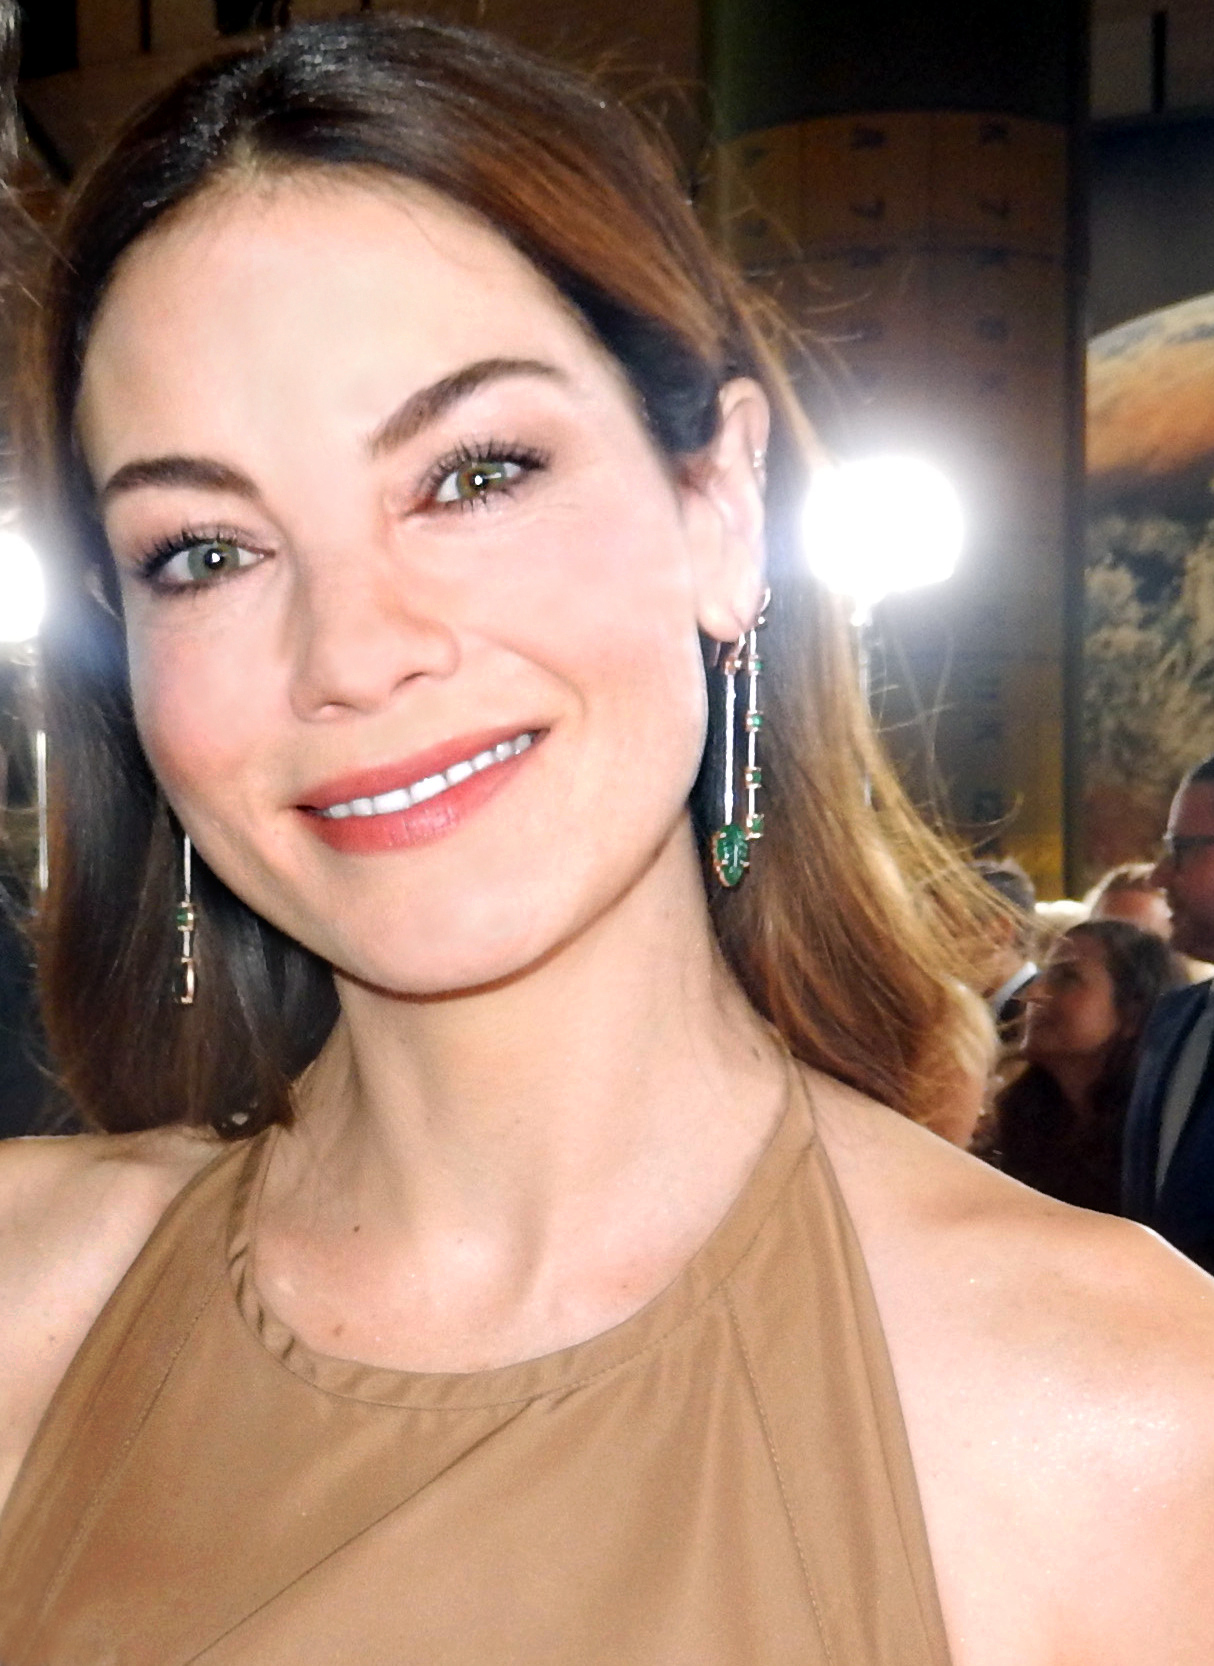 Selfie 2019 Michelle Monaghan naked photo 2017